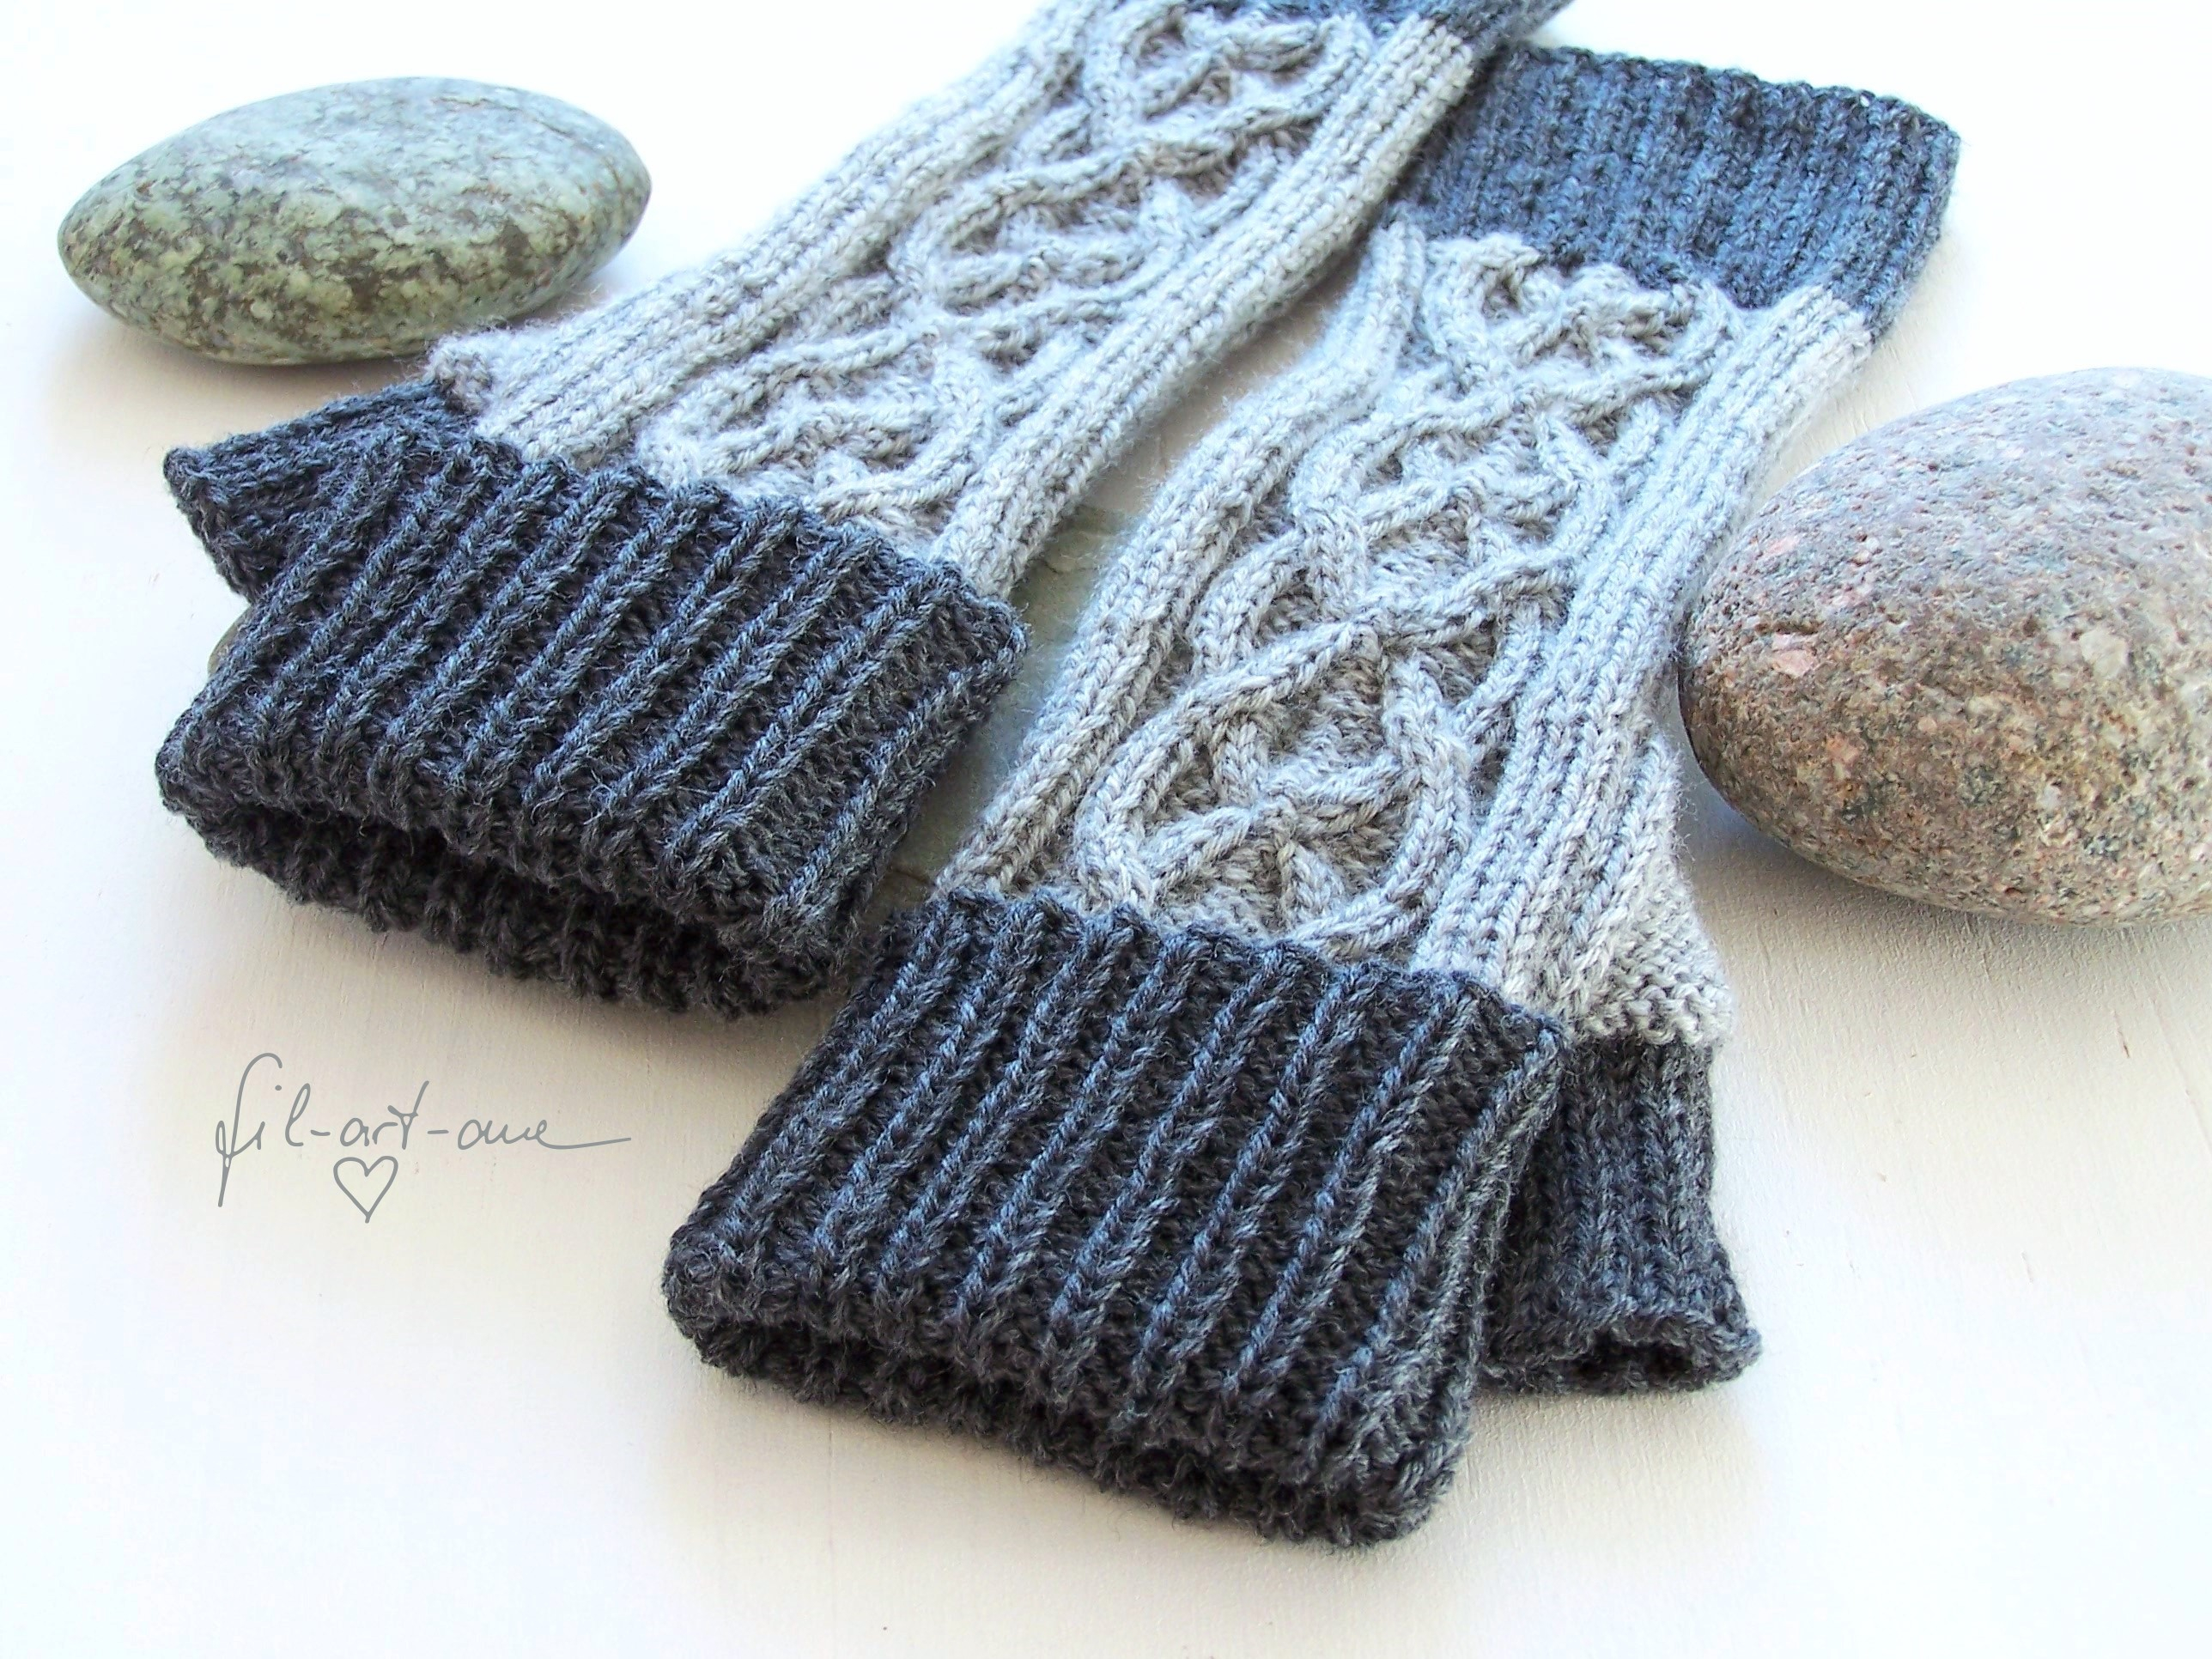 Mens Fingerless Gloves Knit Pattern Knitting Pattern Fingerless Mitts With Celtic Cables For Him And Her 3 Sizes